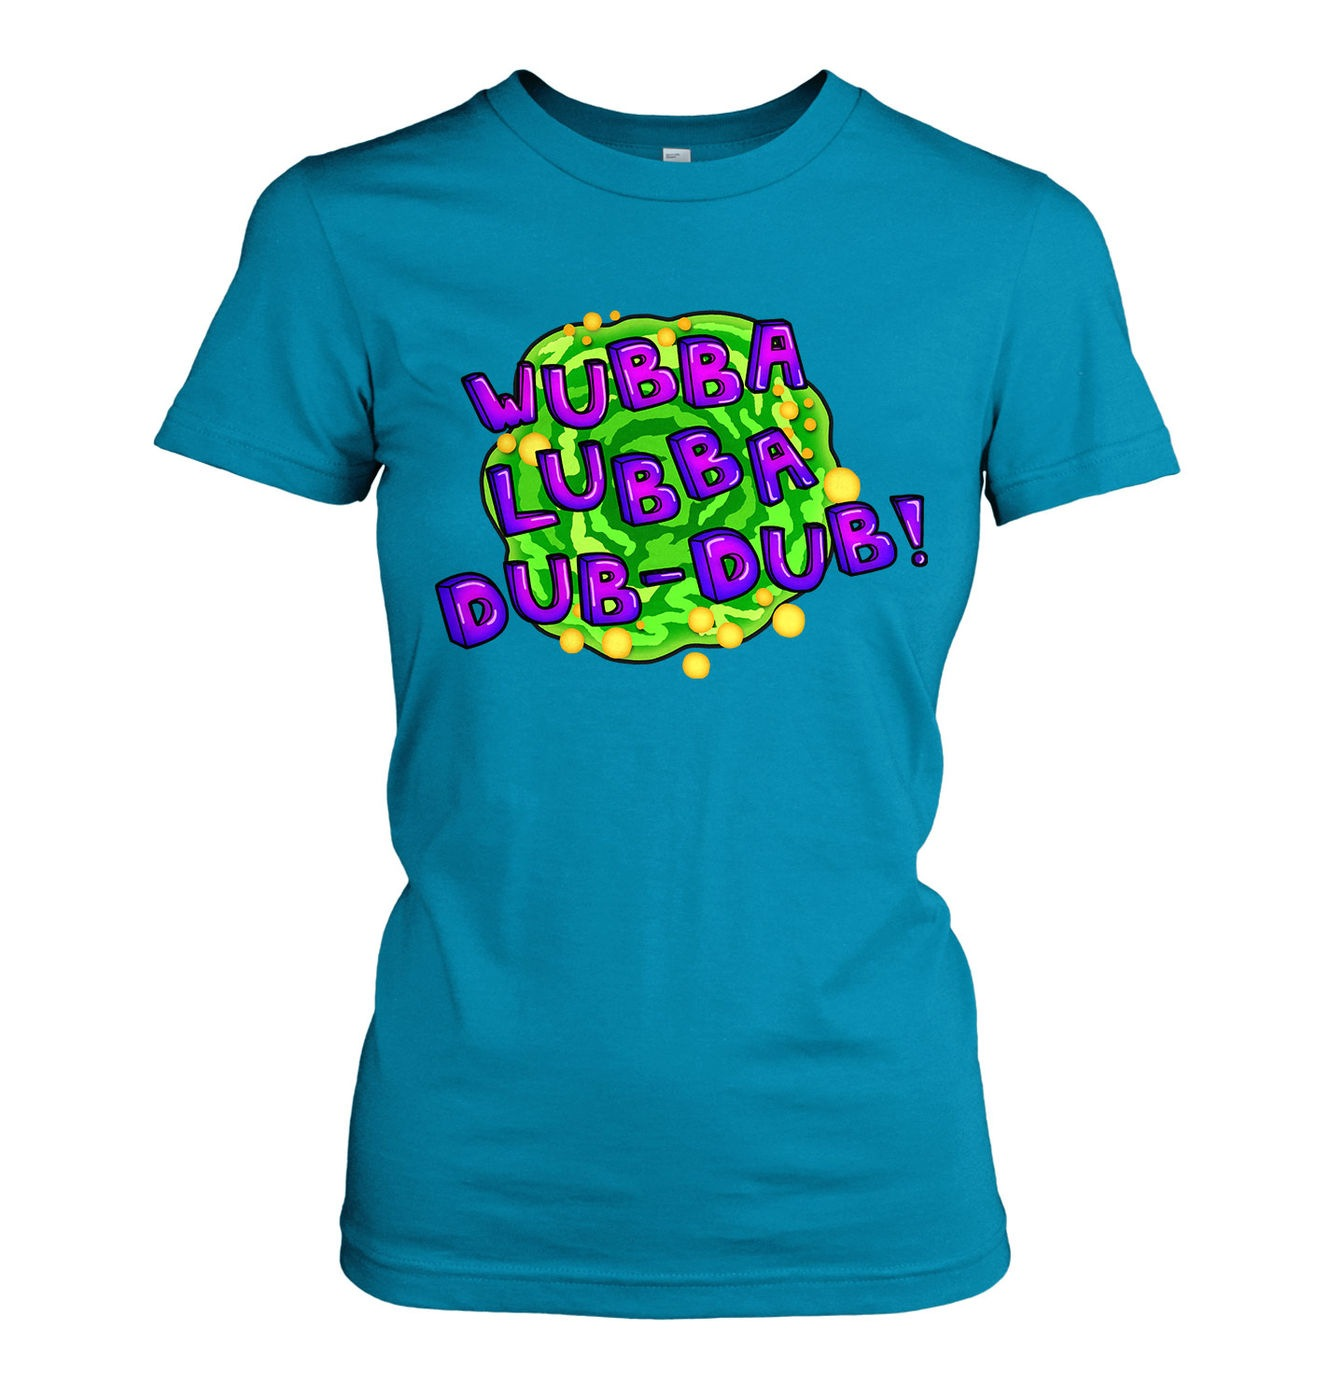 Wubba Lubba women's t-shirt by Something Geeky